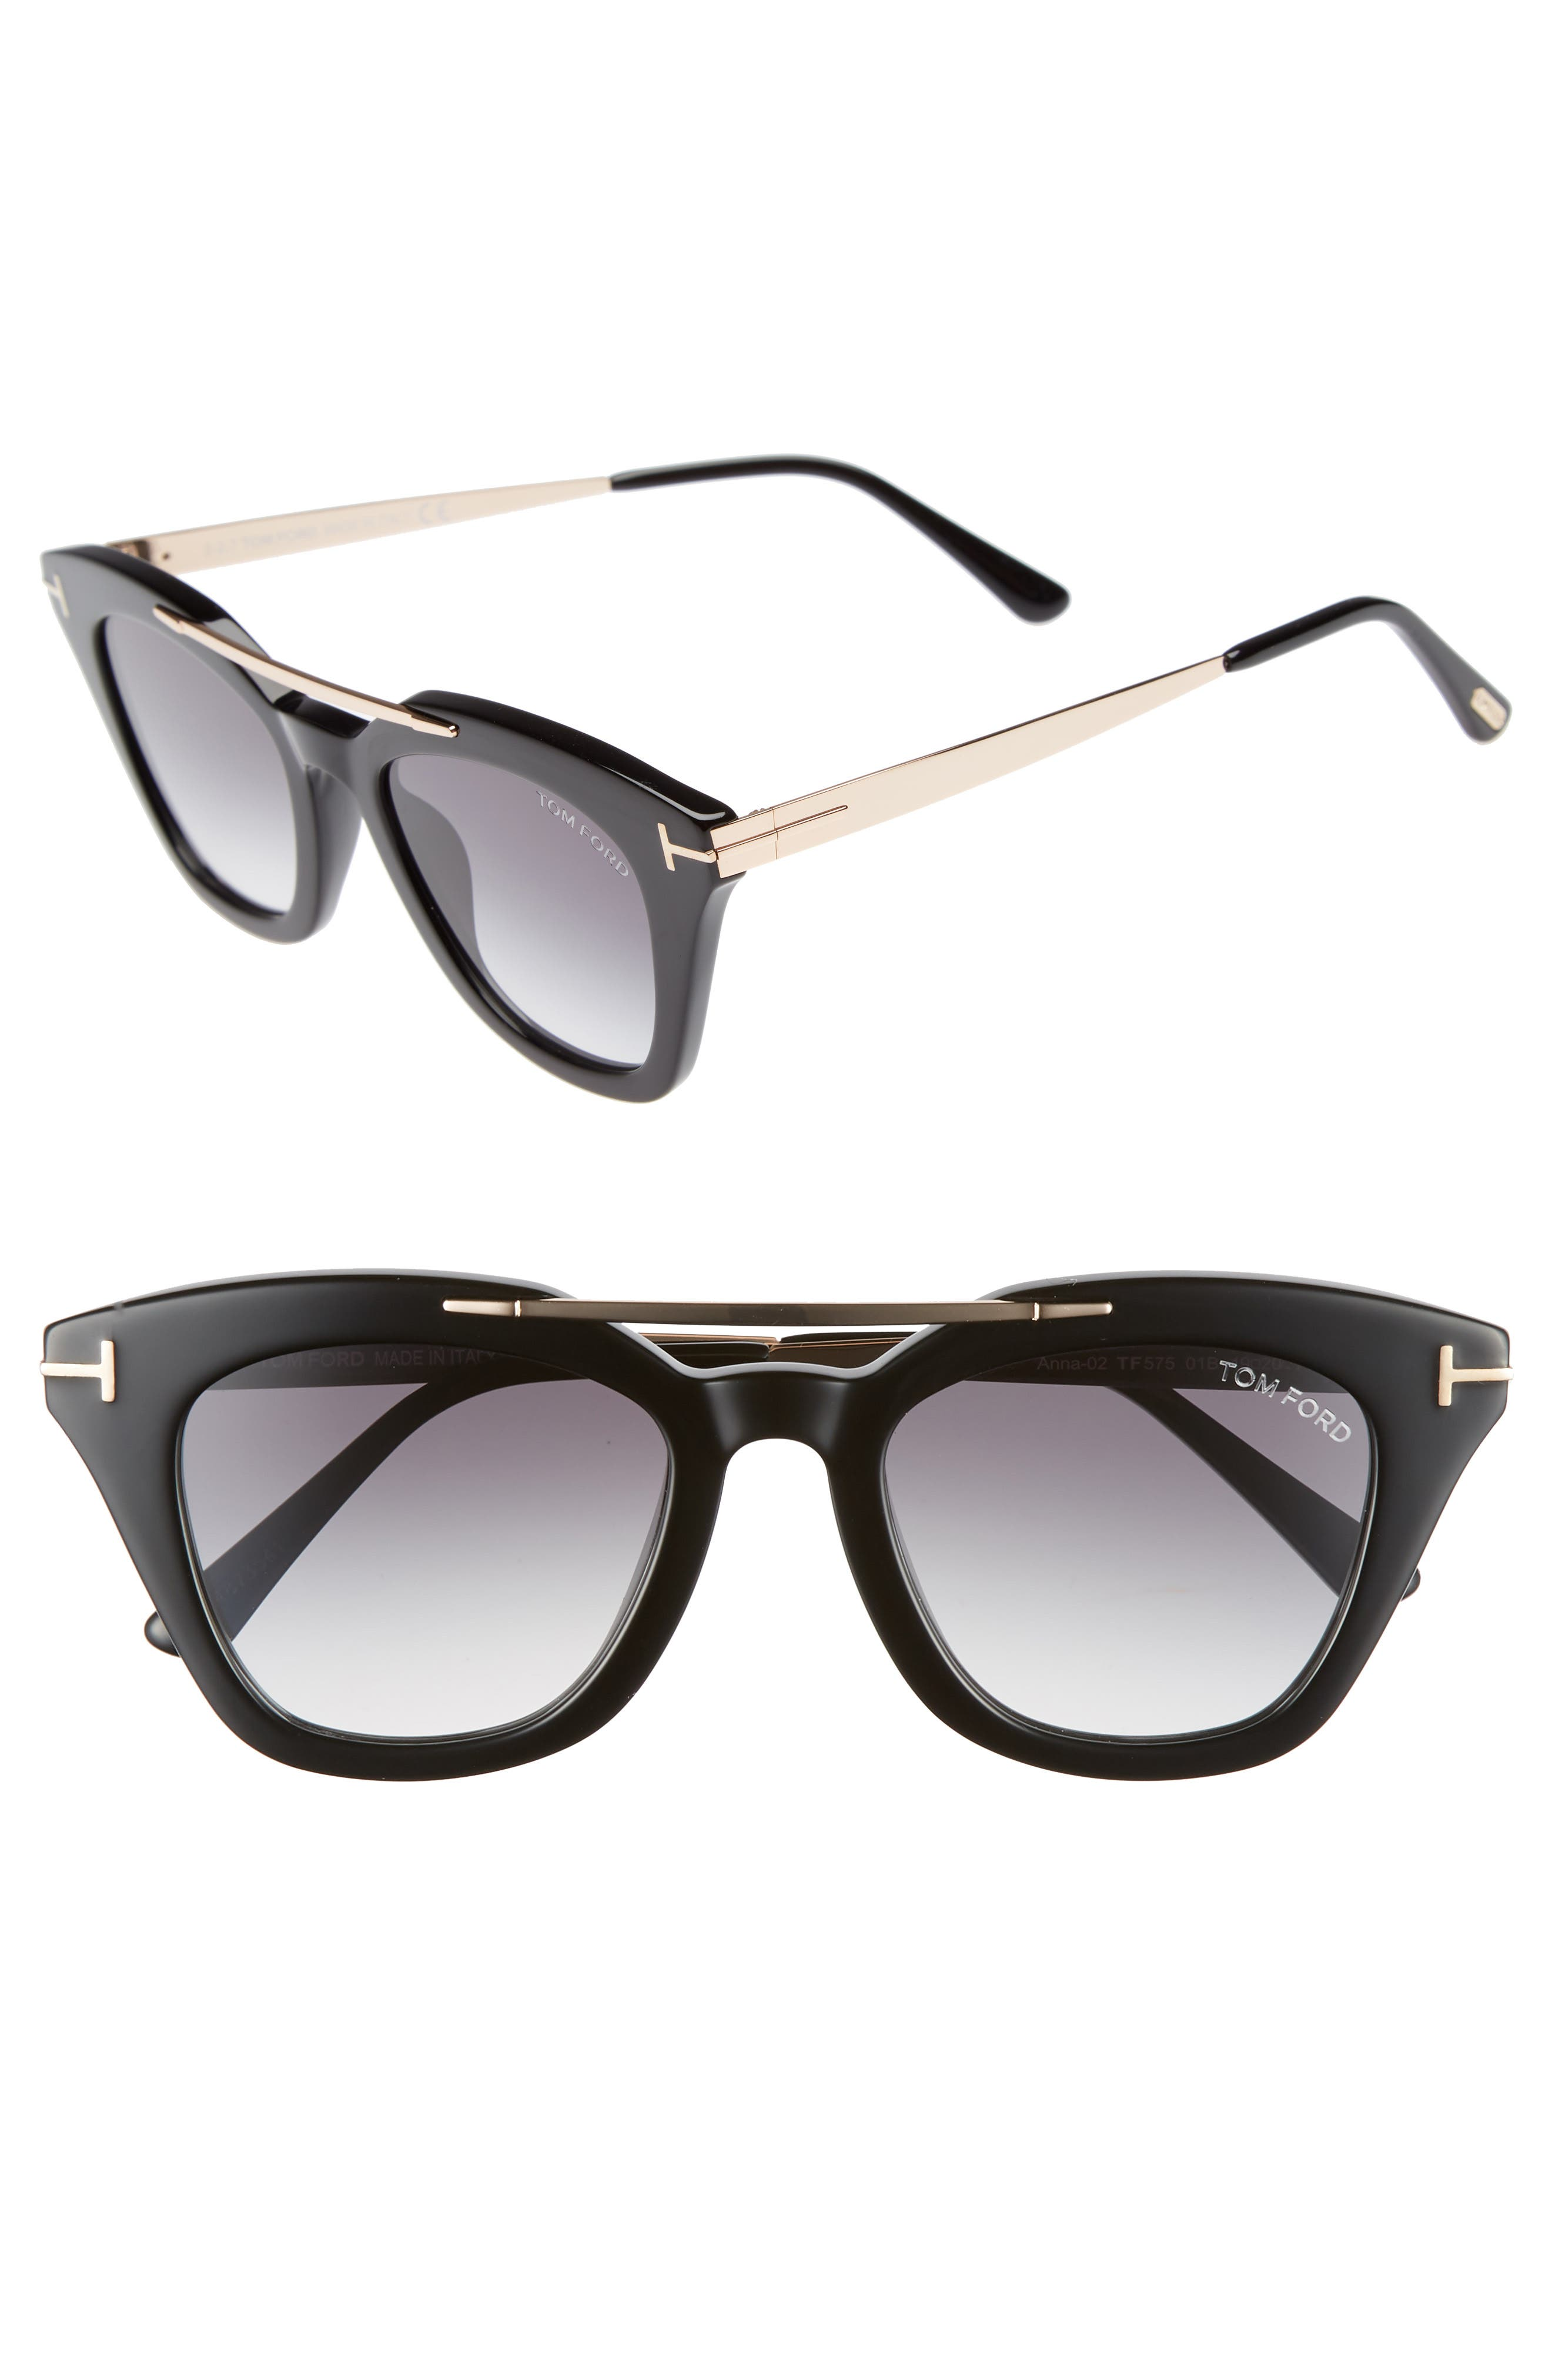 Tom Ford Anna 4m Gradient Sunglasses - Black Acetate/ Rose Gold